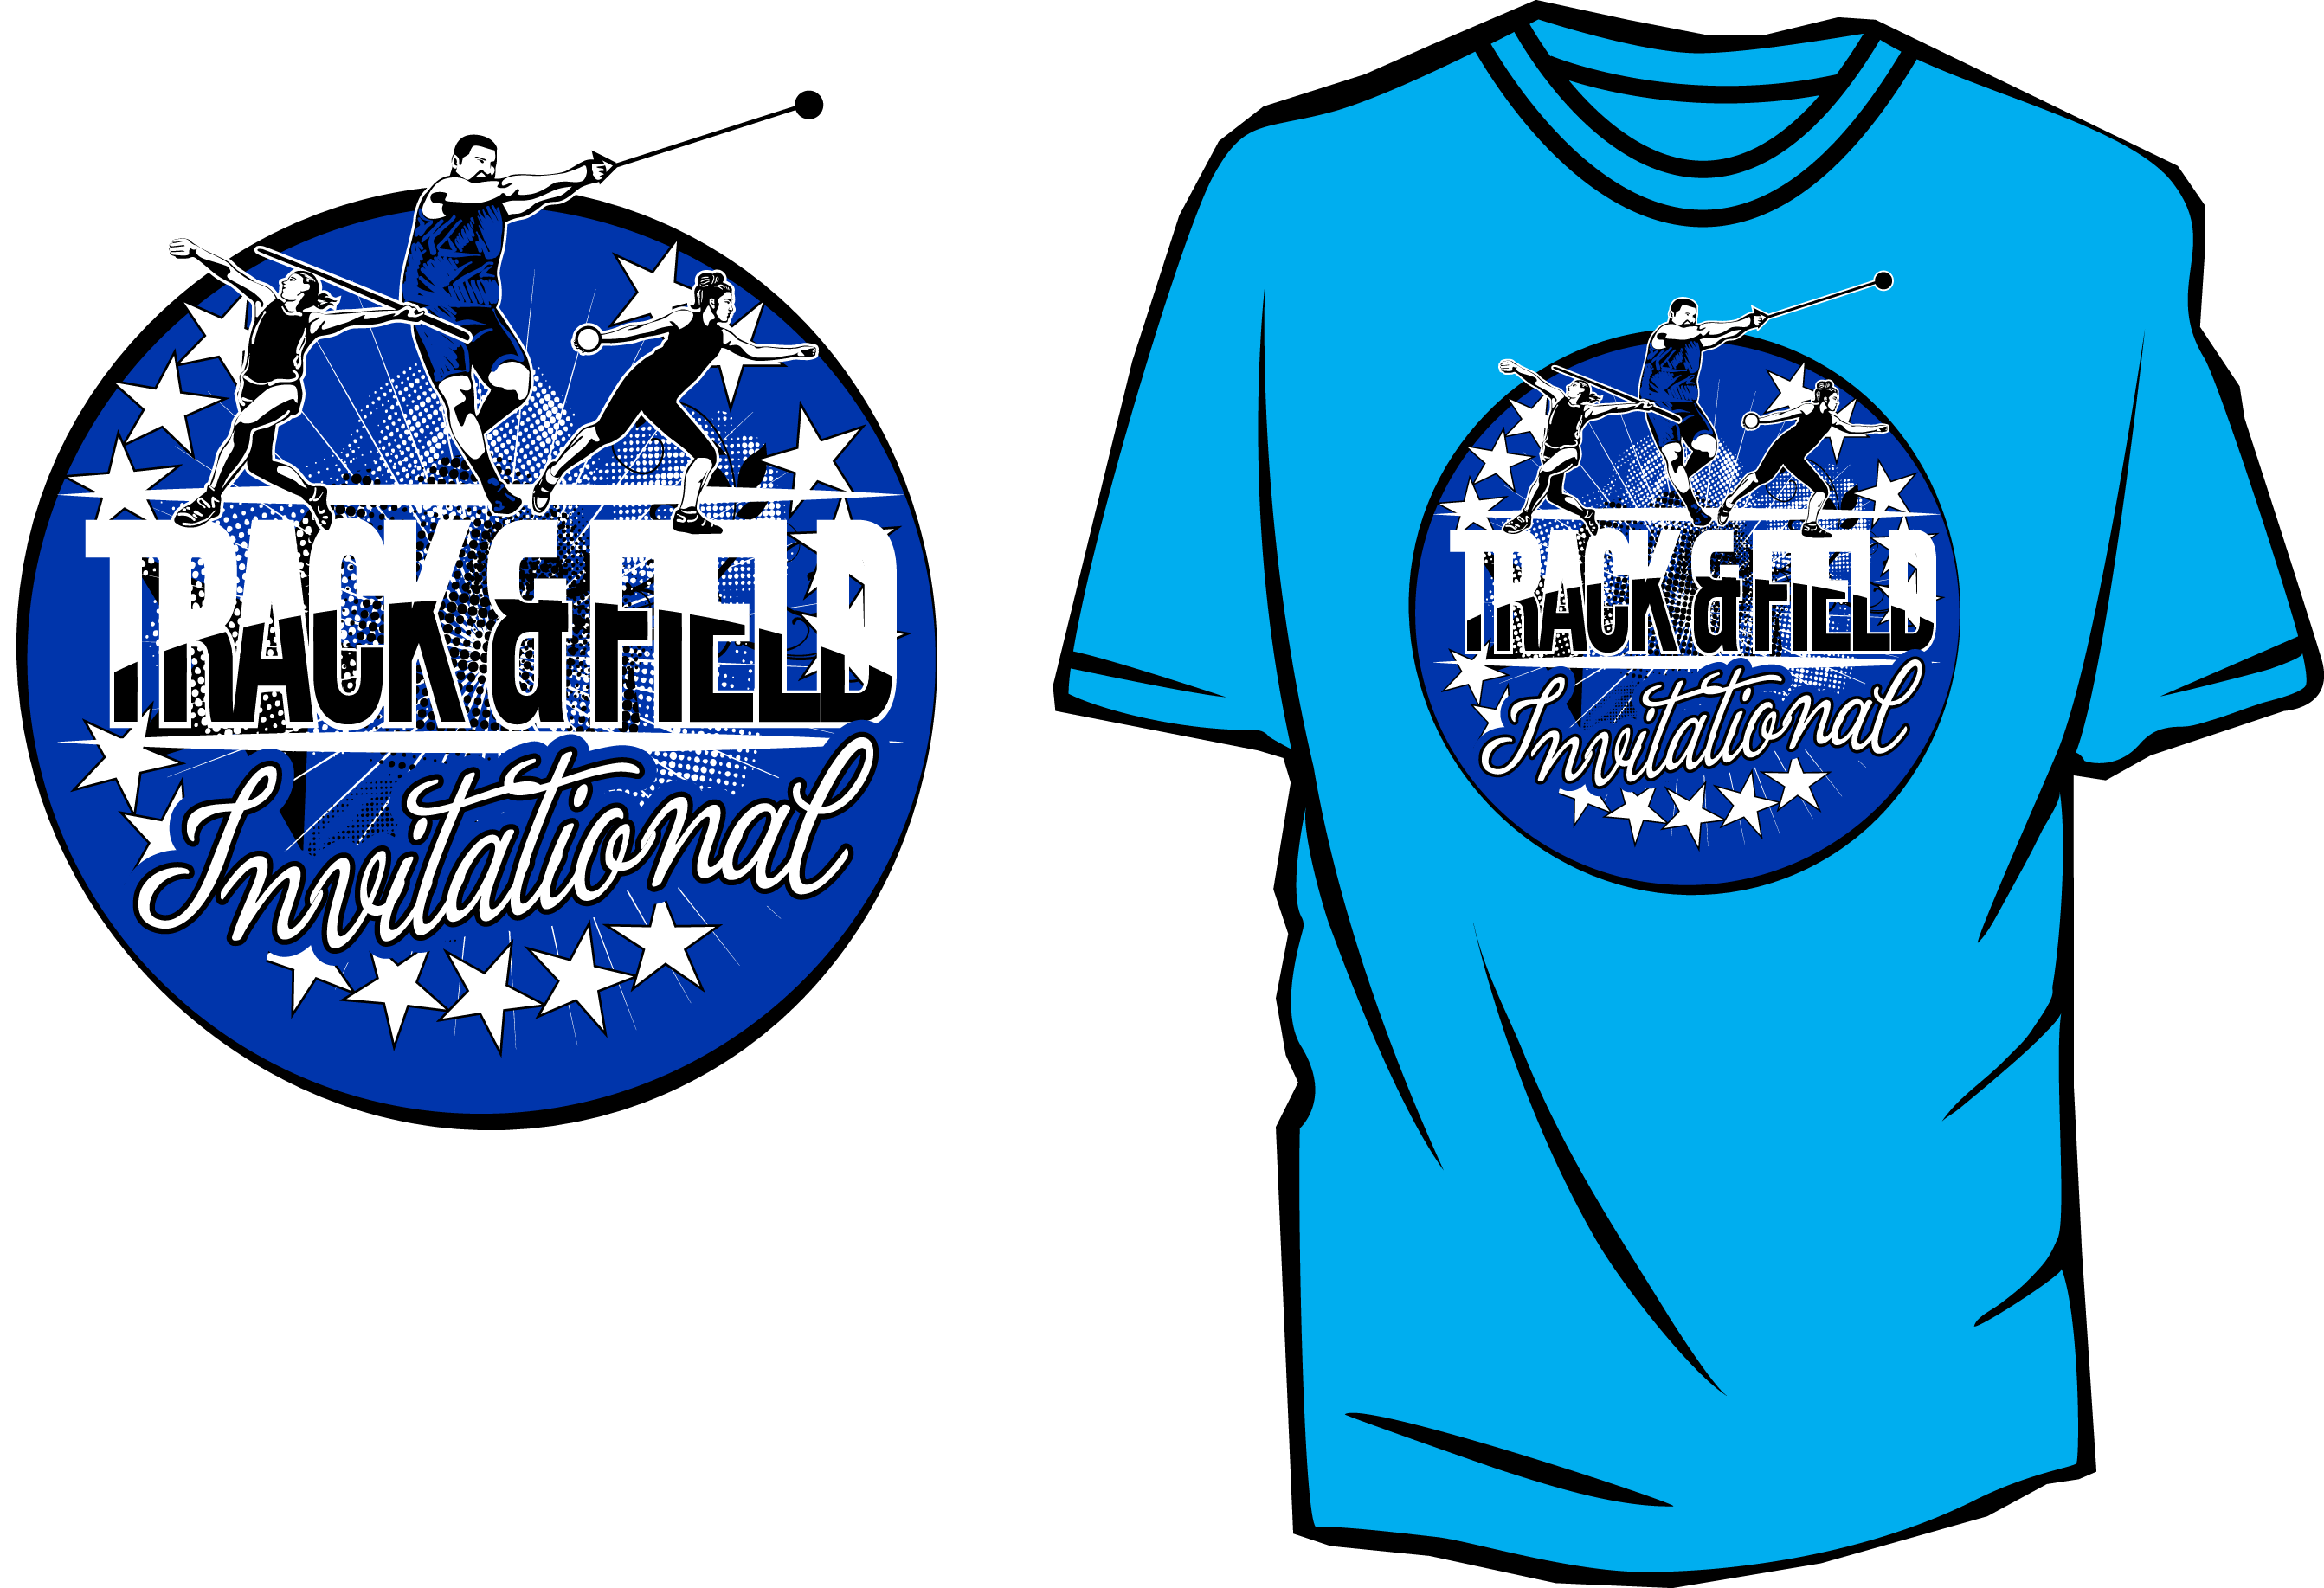 2685x1835 Track And Field Vector Design For Tshirt And Apparel Download